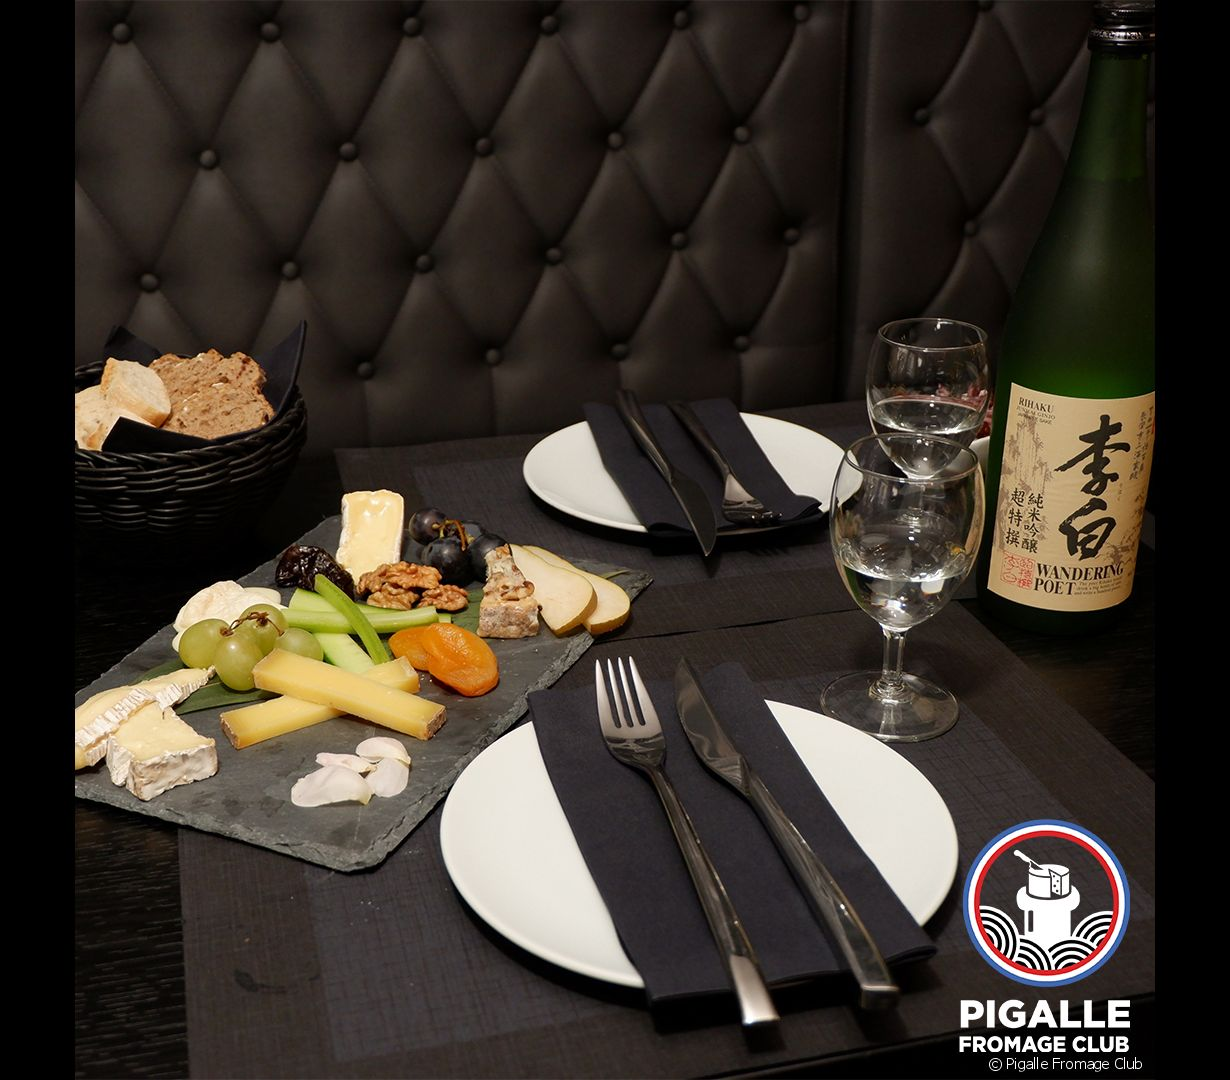 Pigalle Fromage Club, 35 Rue Jean-Baptiste Pigalle, 75009 Paris - Photo 8